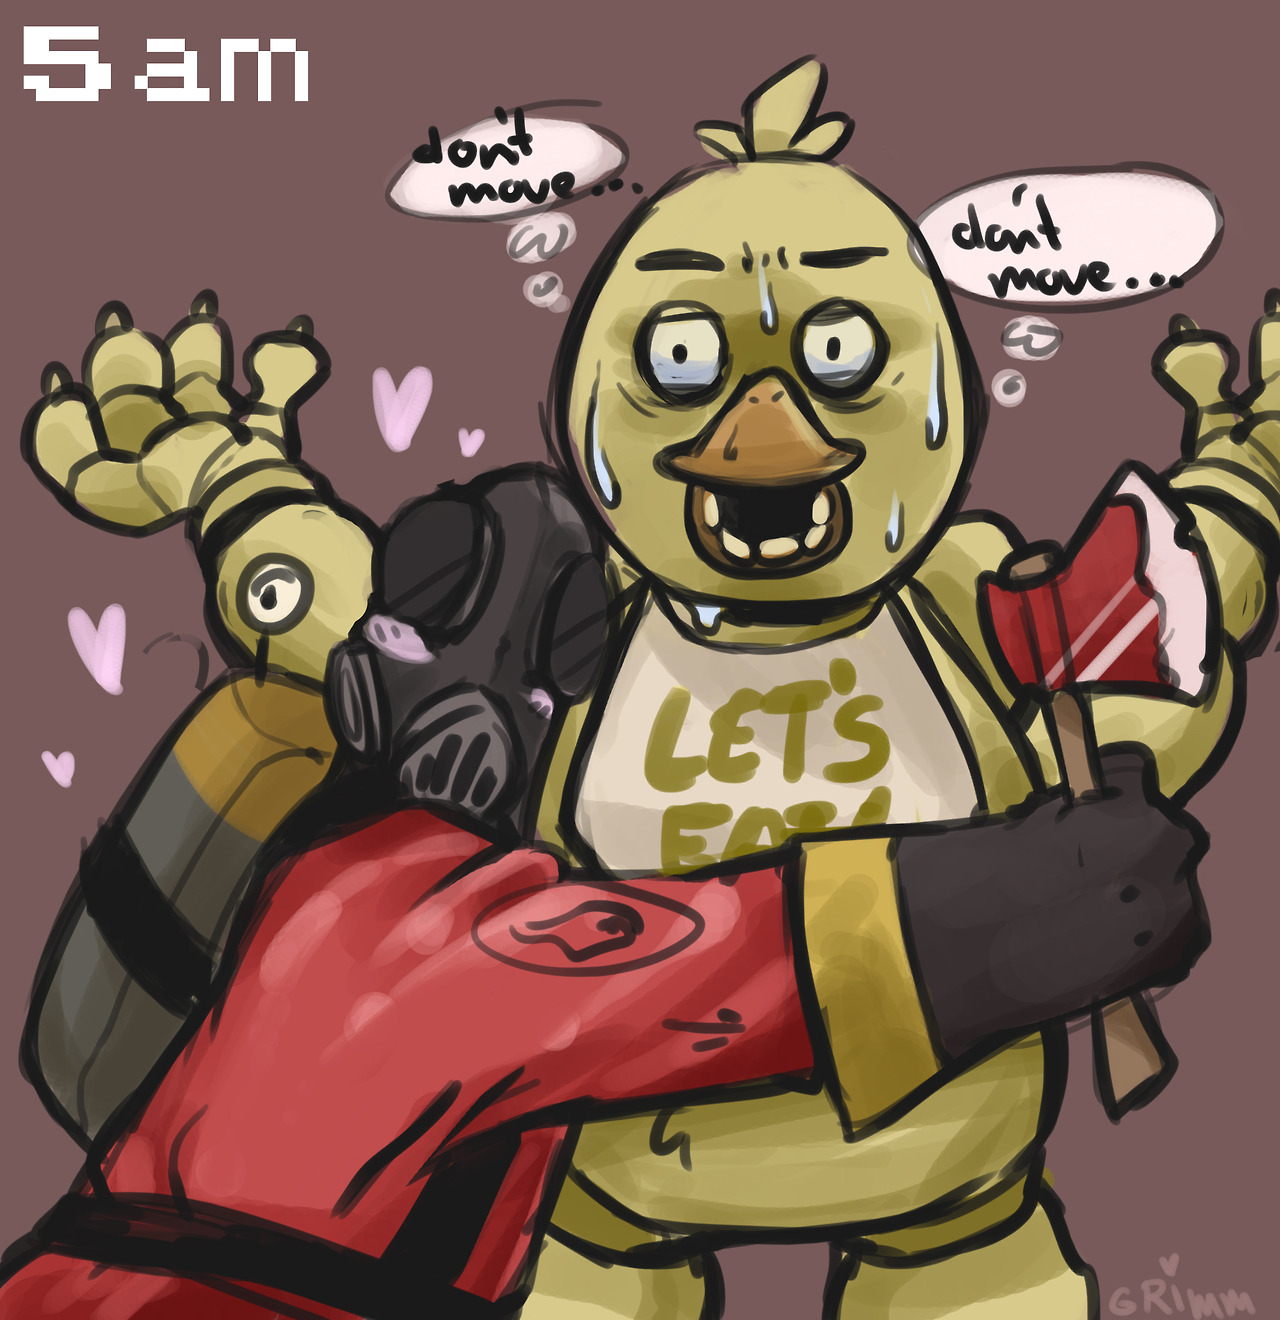 5 Nights At Freddy's Chica pyro's night at freddys 2 - five nights at freddy's fan art